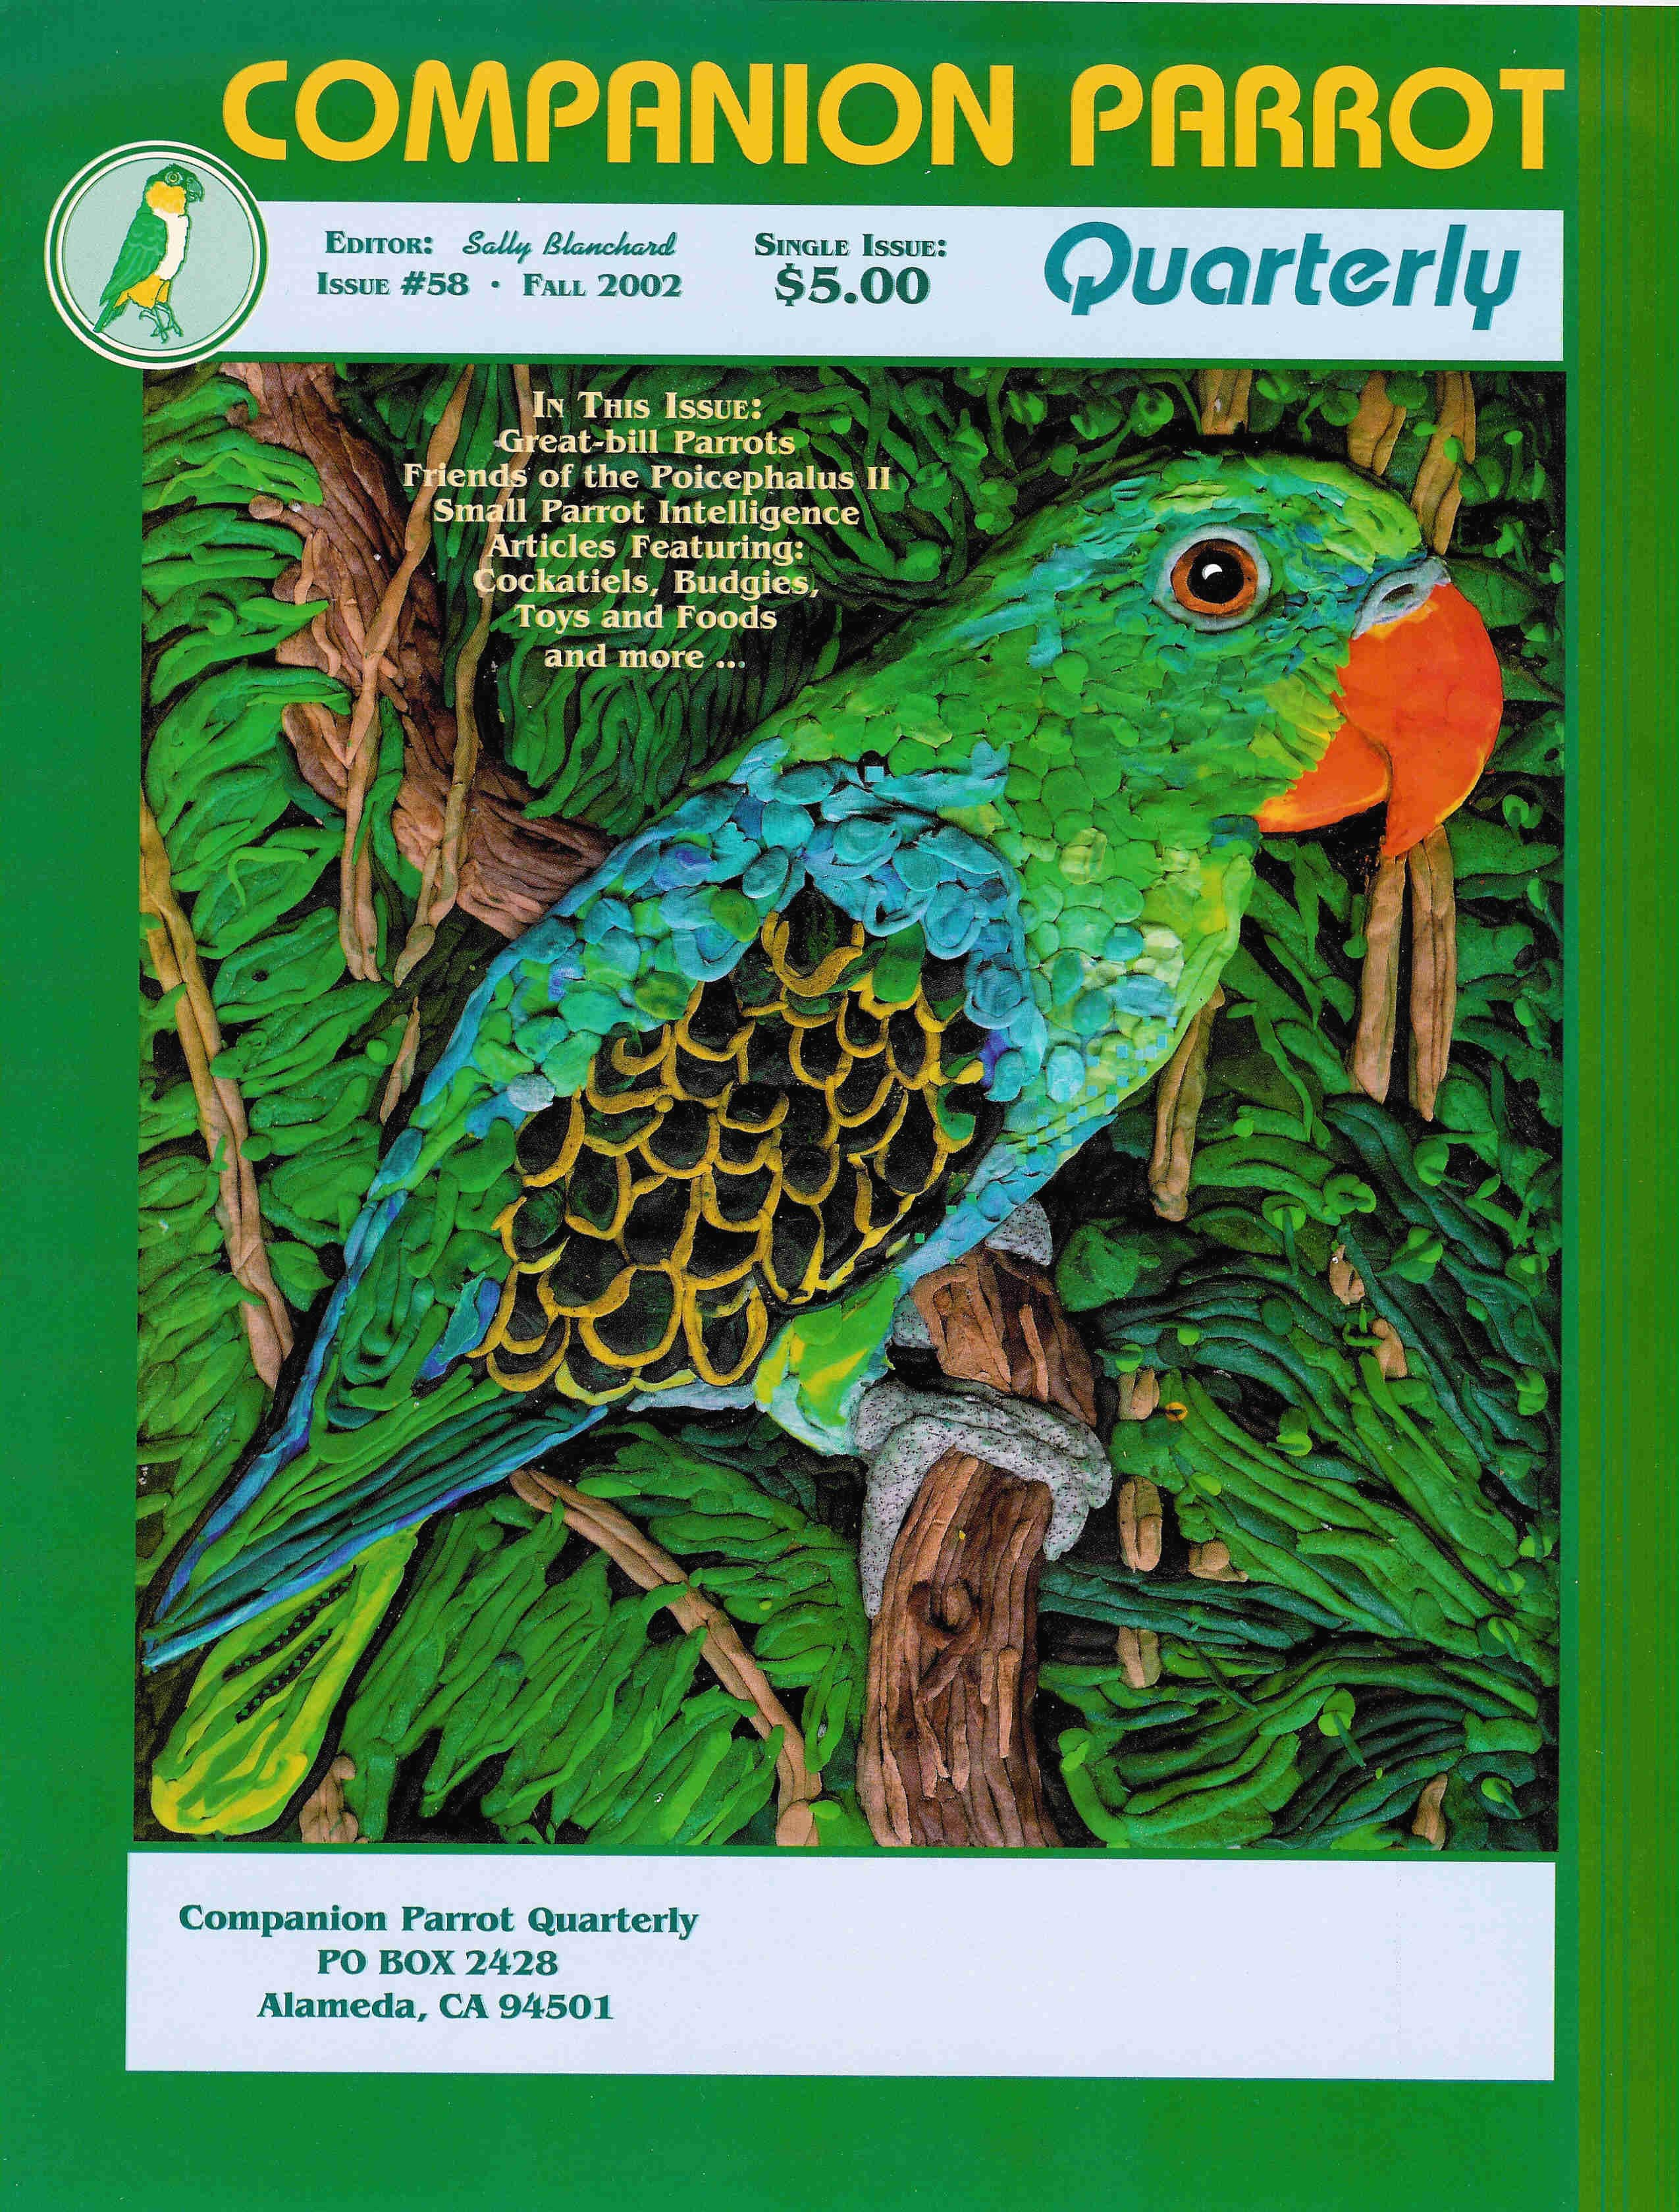 Companion Parrot Quarterly #58